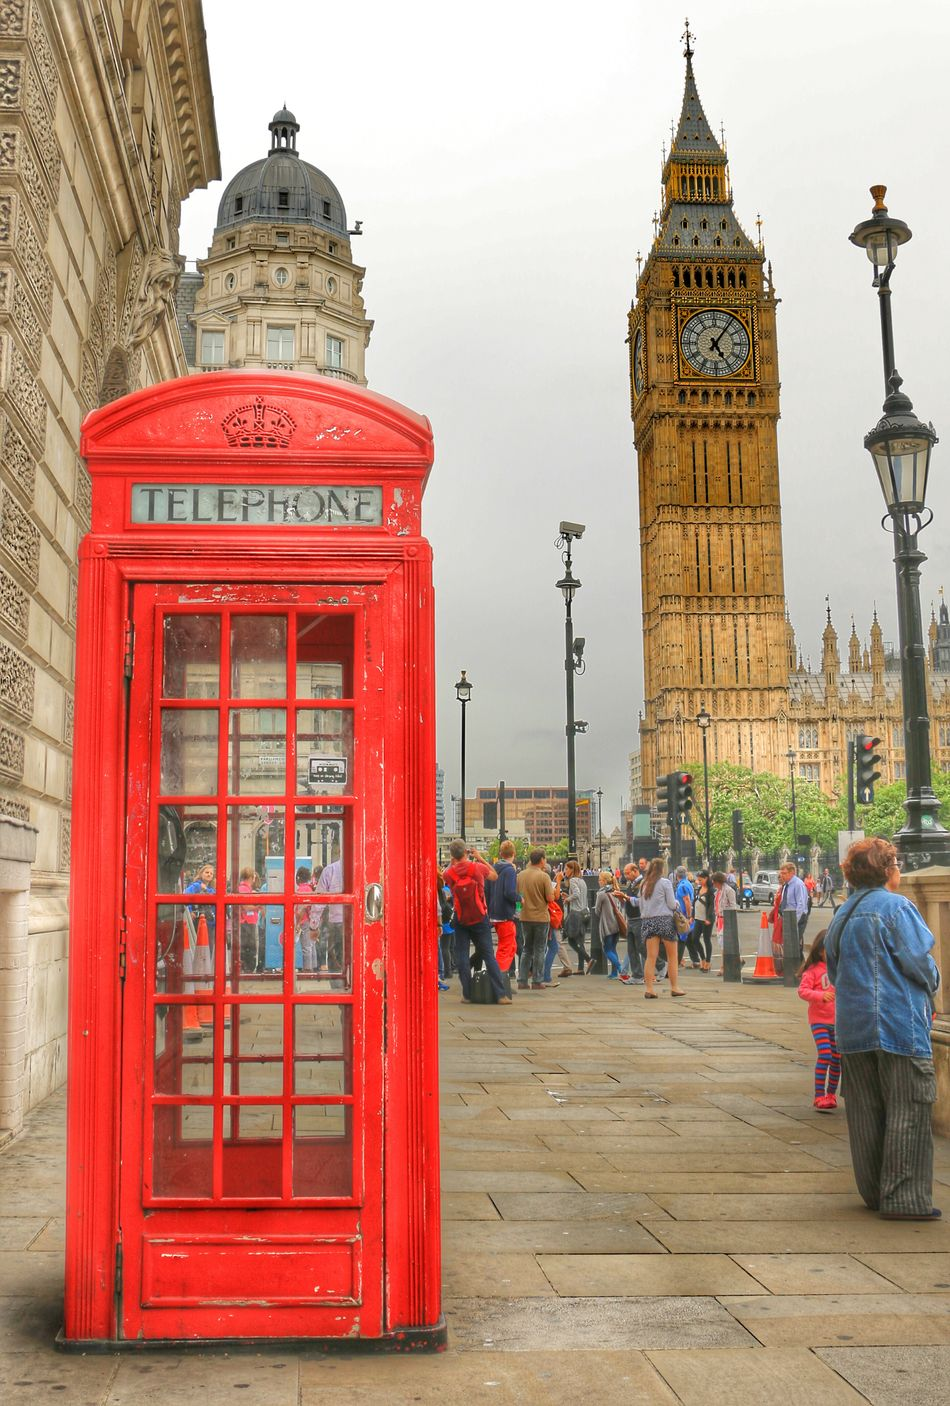 Iconic phonebox and Big Ben in London London LONDON❤ London_only Londonlife Londonstreets Bigben Bigbenlove Big Ben Postbox Red HDR Hdr_Collection Hdr Edit Hdrphotography Hdr_pics HDR Streetphotography Hdr_captures HDRphoto Hdr_edits